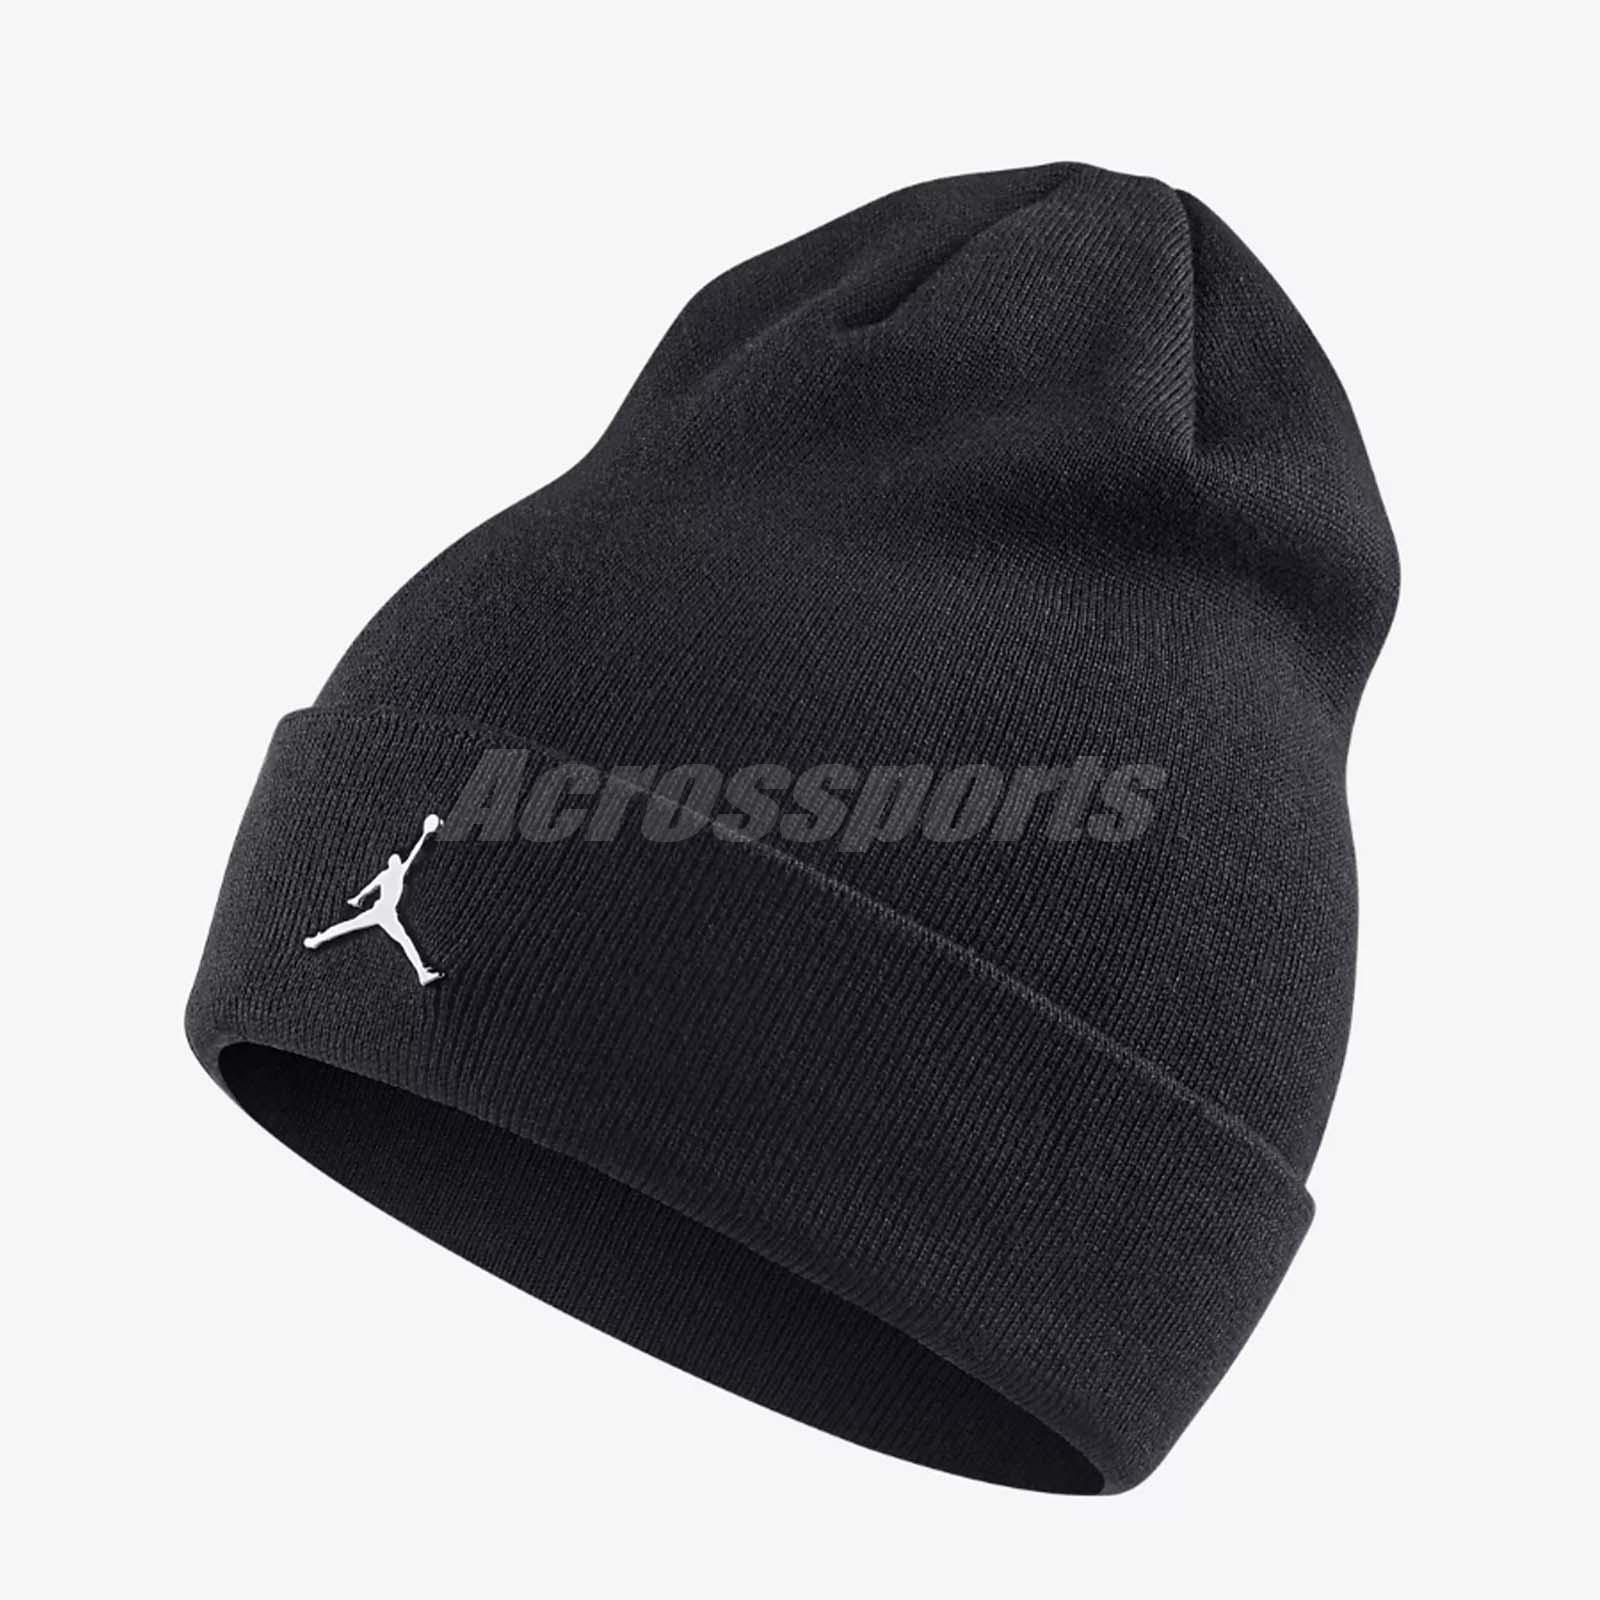 f98e634bf73 Nike Air Jordan Beanie Cuffed Winter Knit Warm Hat Jumpman Gym Black  AA1297-010